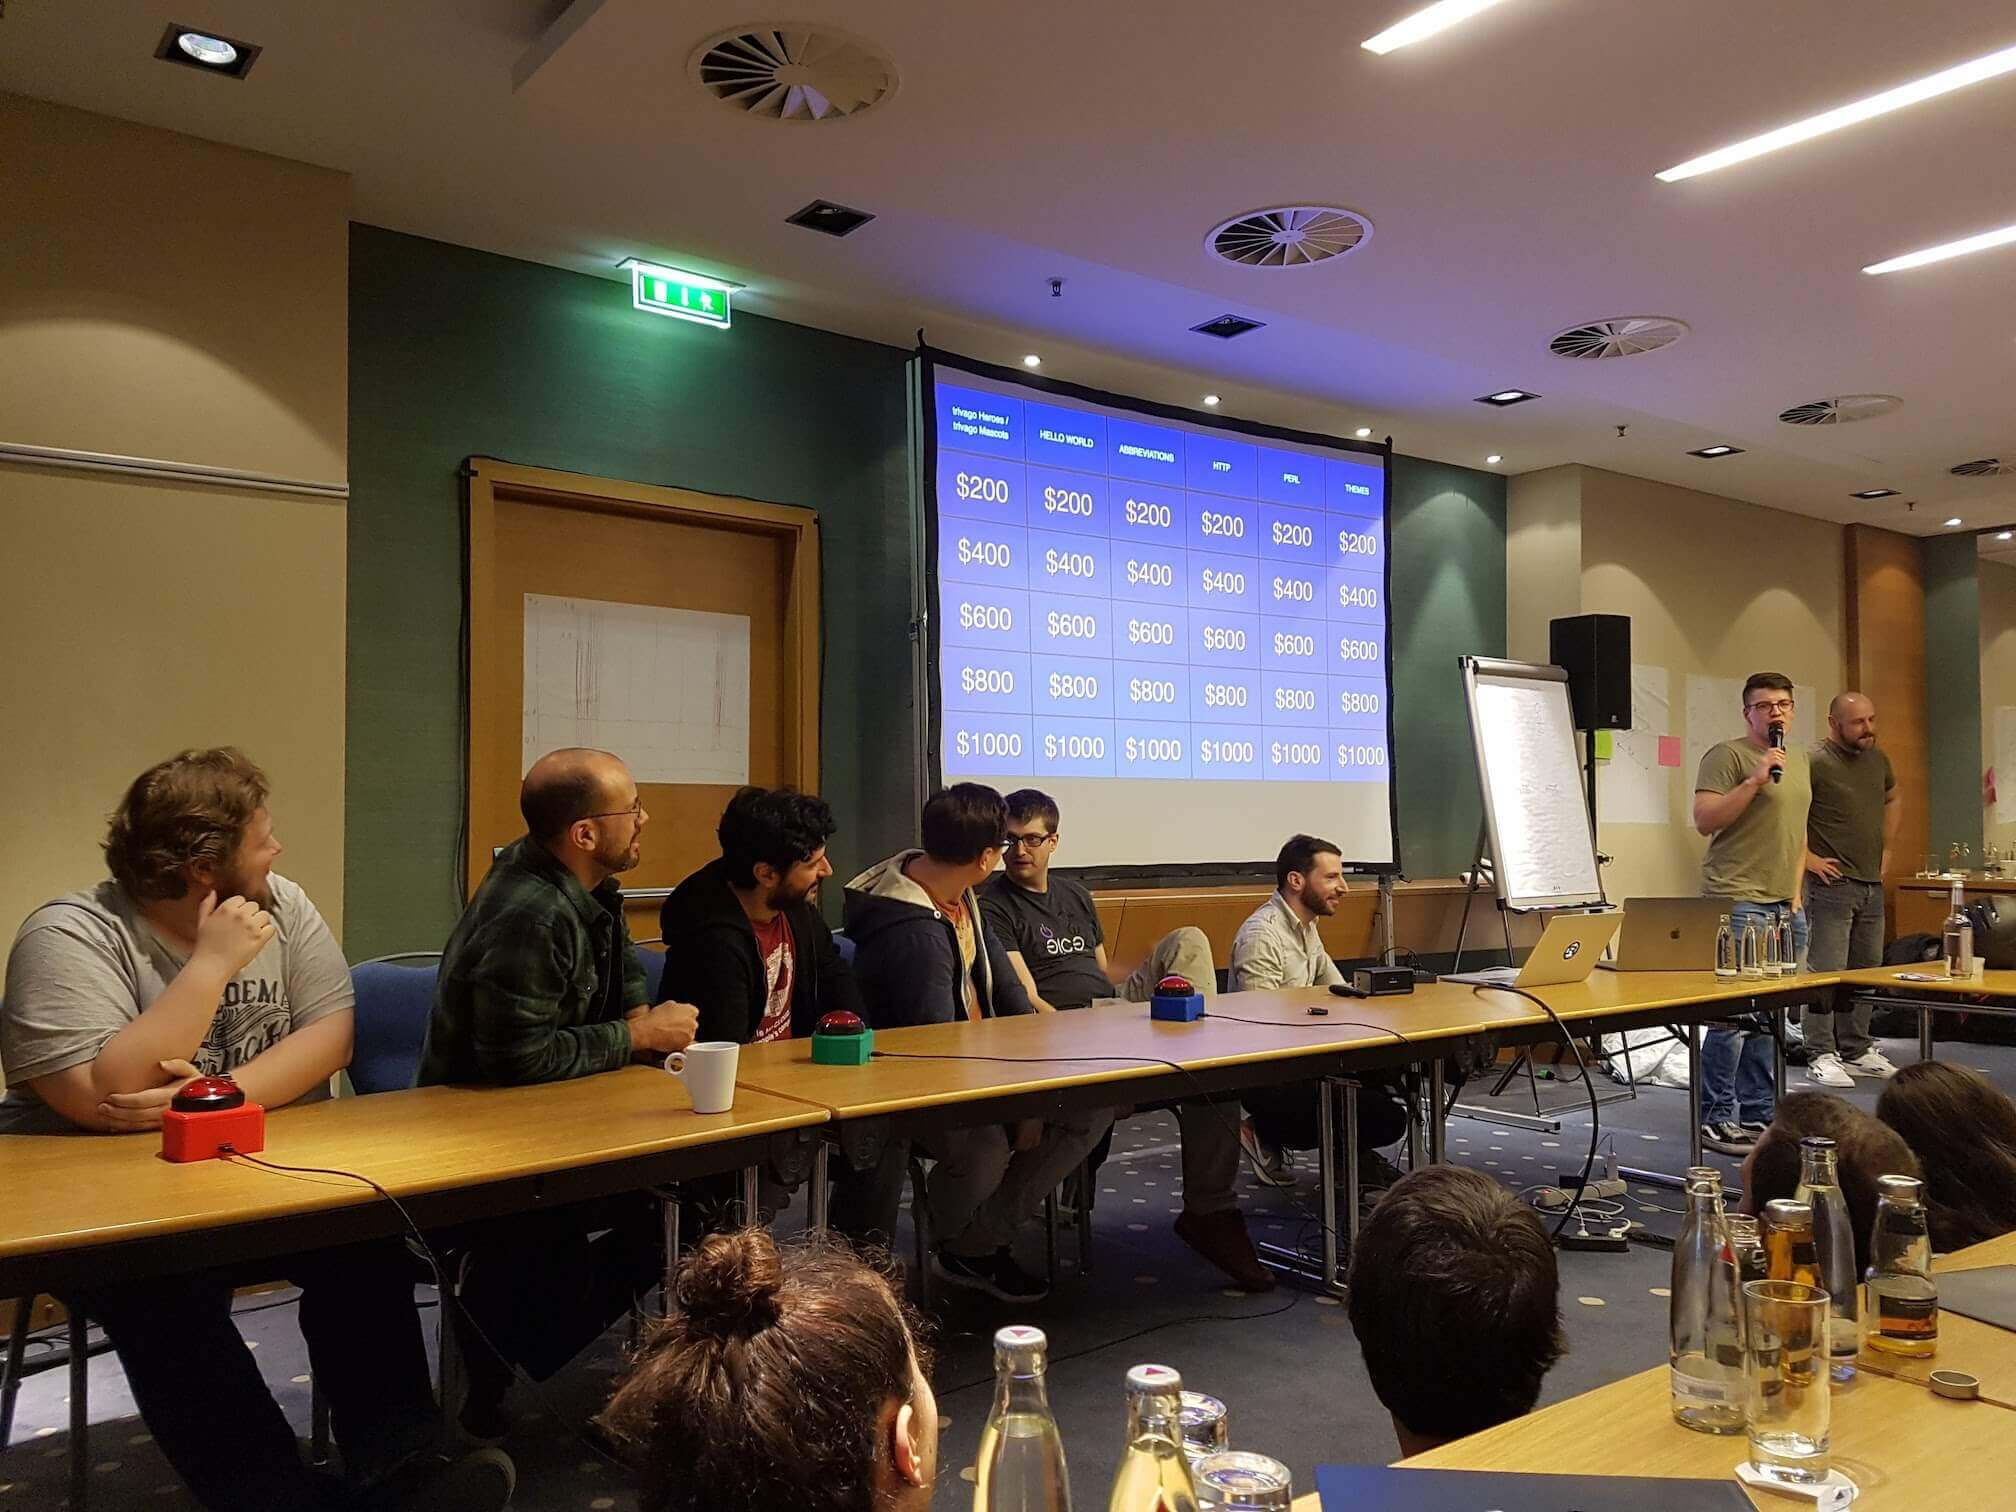 Playing a Jeopardy! game at trivago's internal tech conference on the 19th of March 2019 with our self-made game show buzzers.